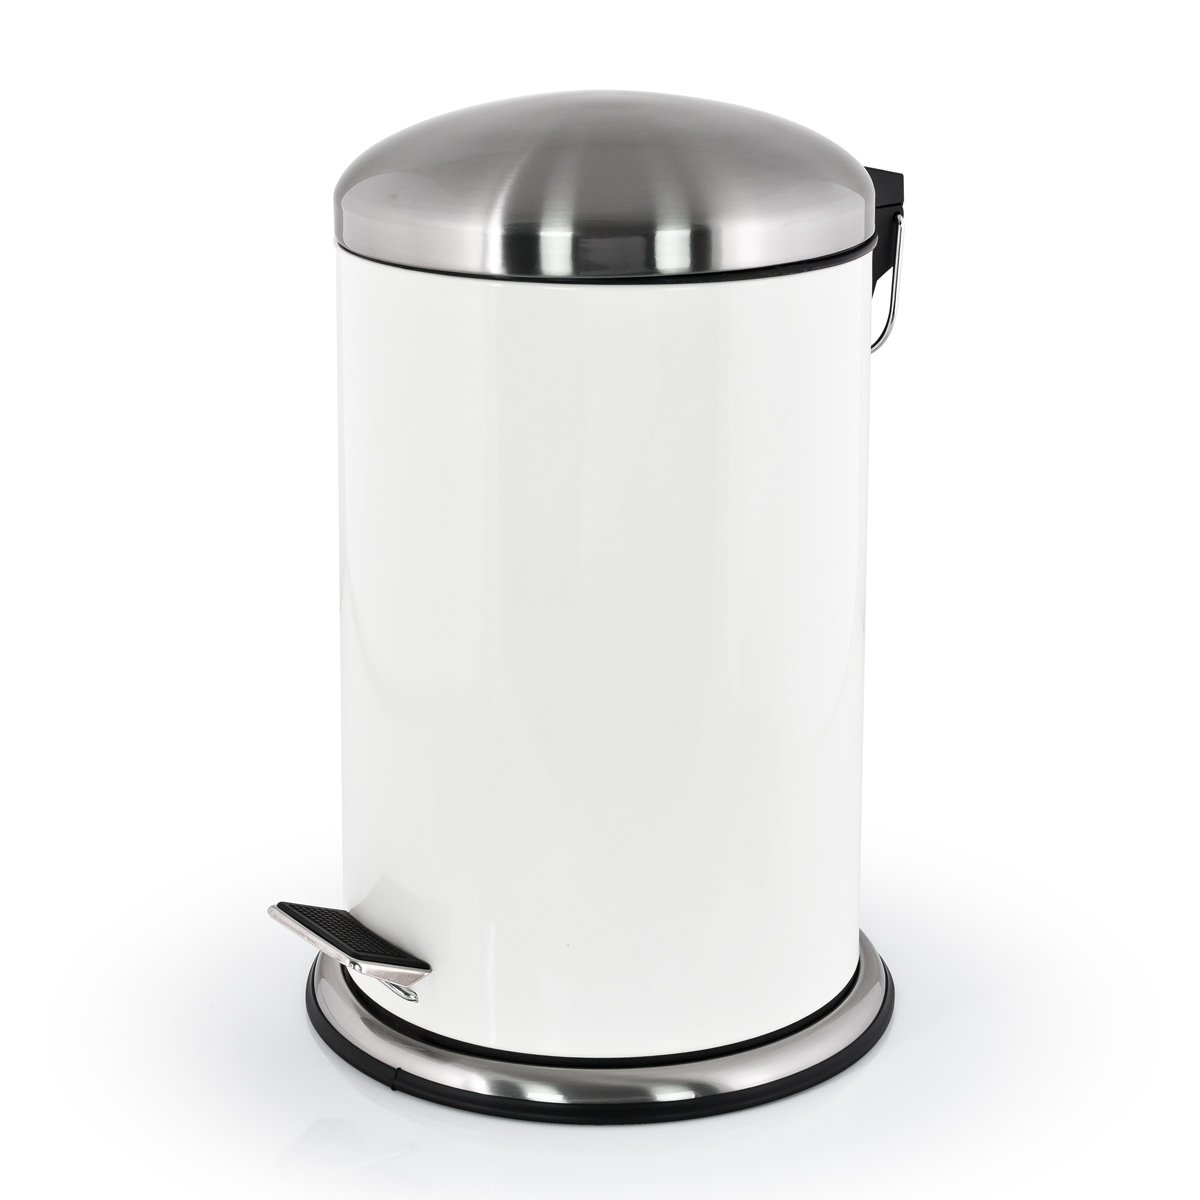 bremermann® 12L Pedal Bin with Soft Close, Anti-Fingerprint, white